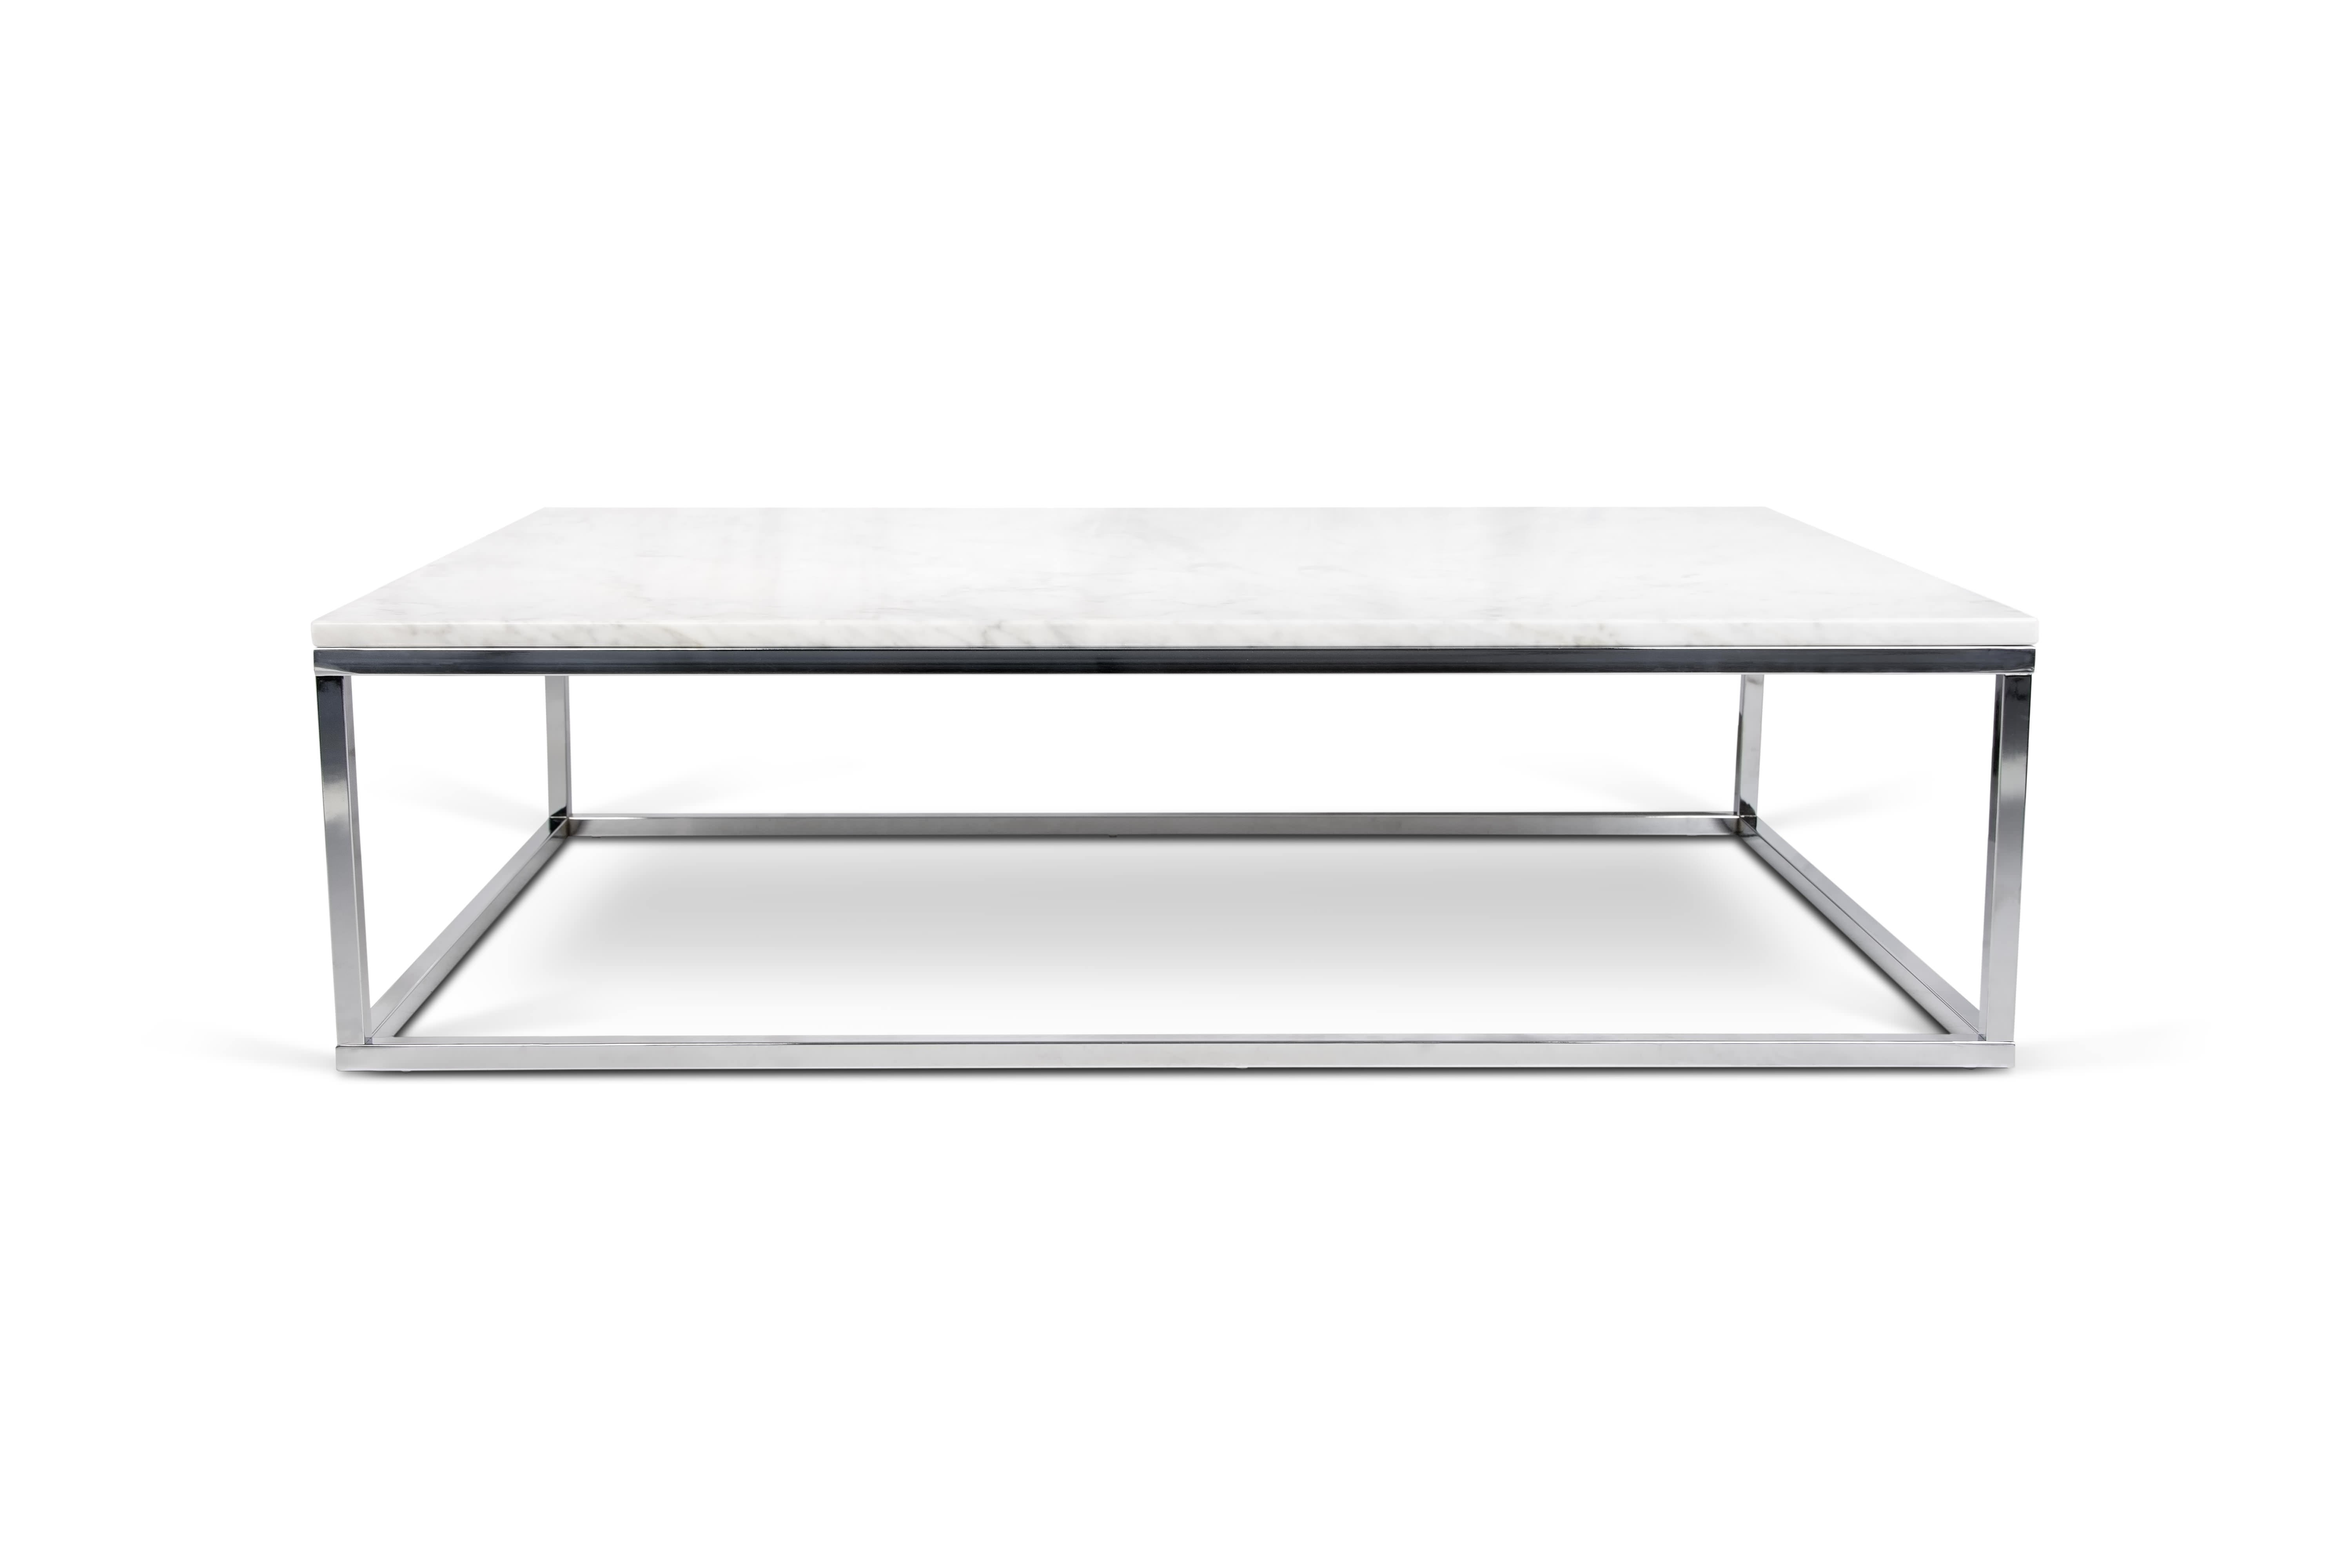 marble coffee table design photo - 5